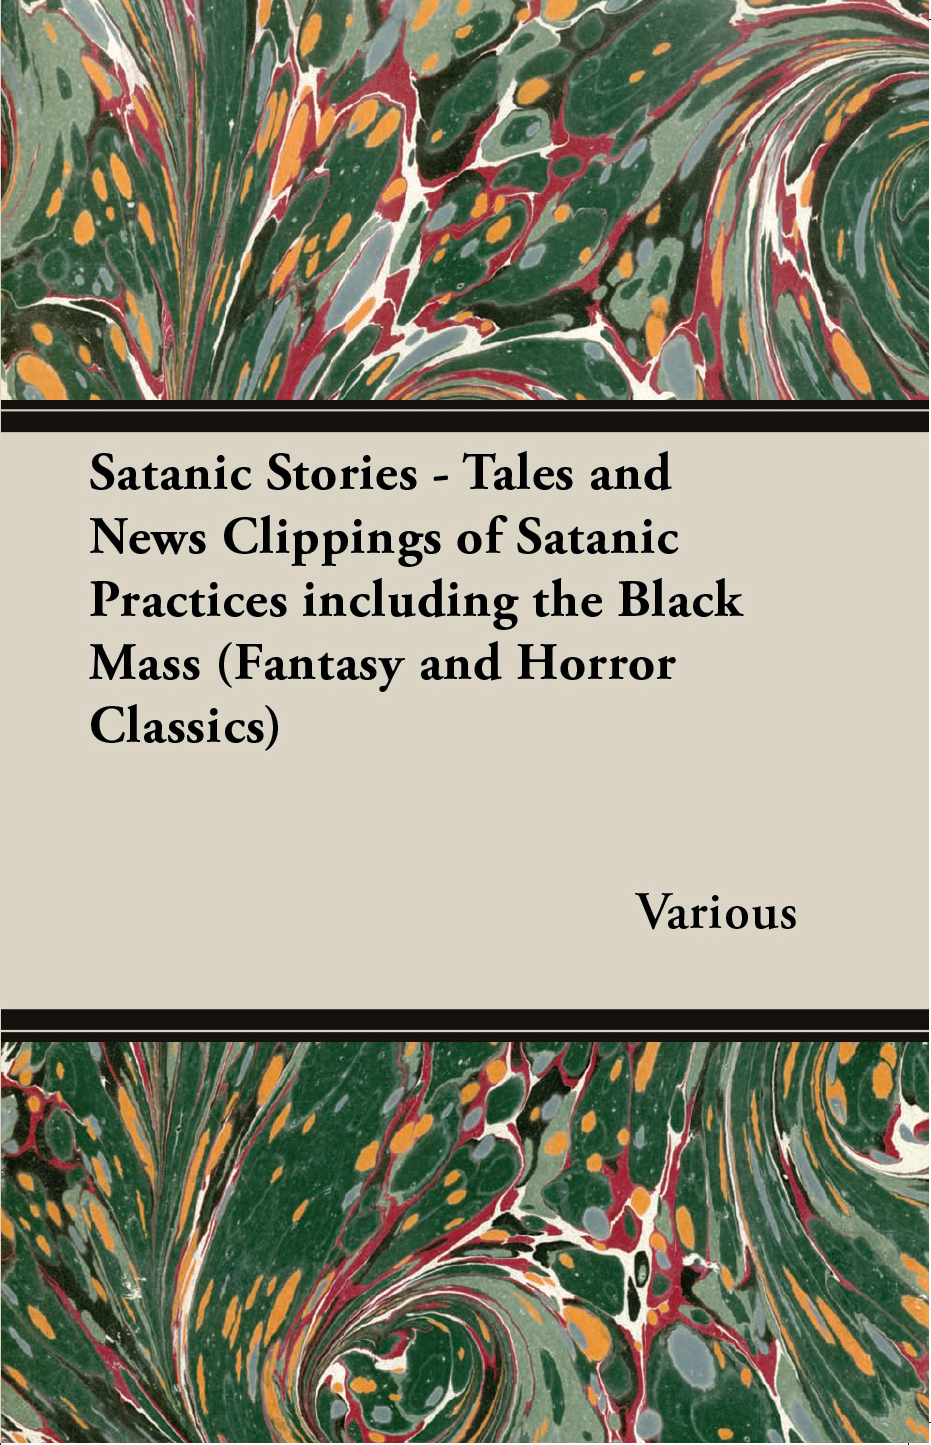 Satanic Stories - Tales and News Clippings of Satanic Practices including the Black Mass (Fantasy and Horror Classics) By: Various